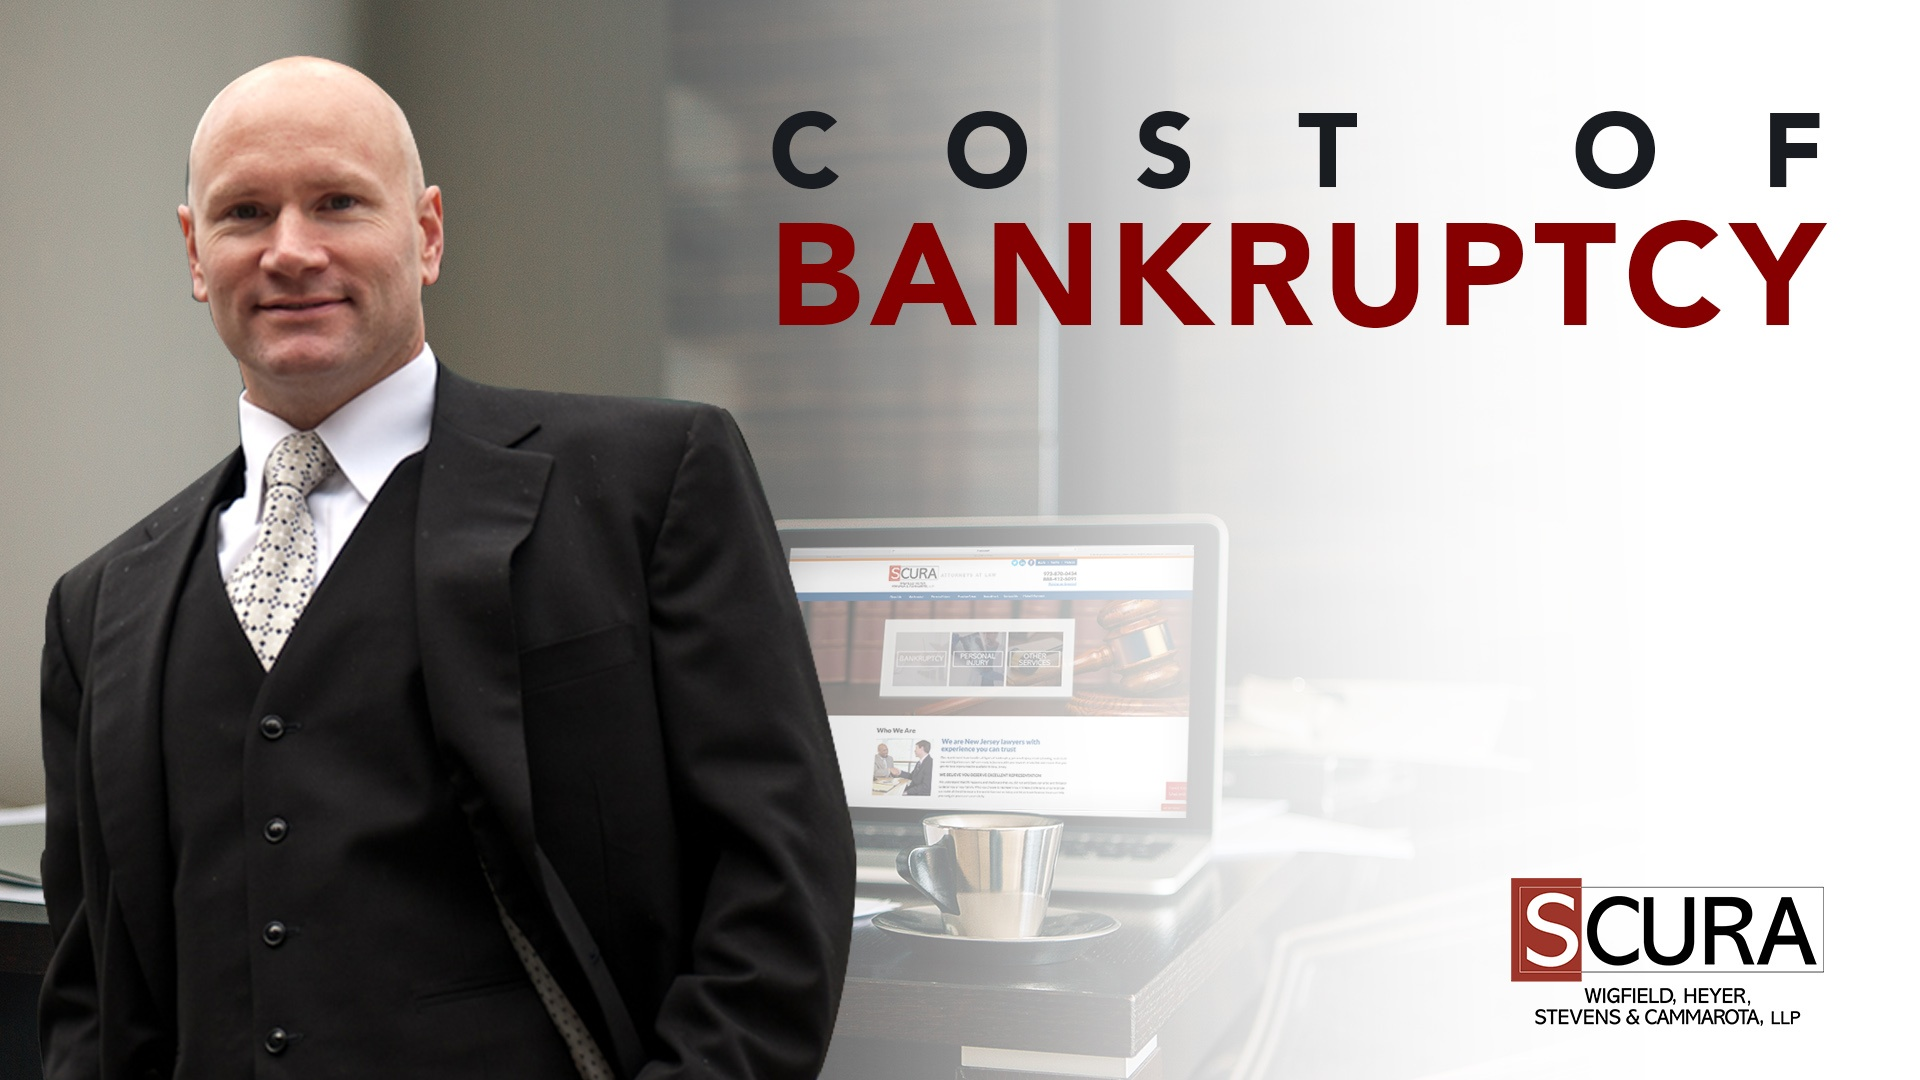 Cost-of-bankruptcy.jpg